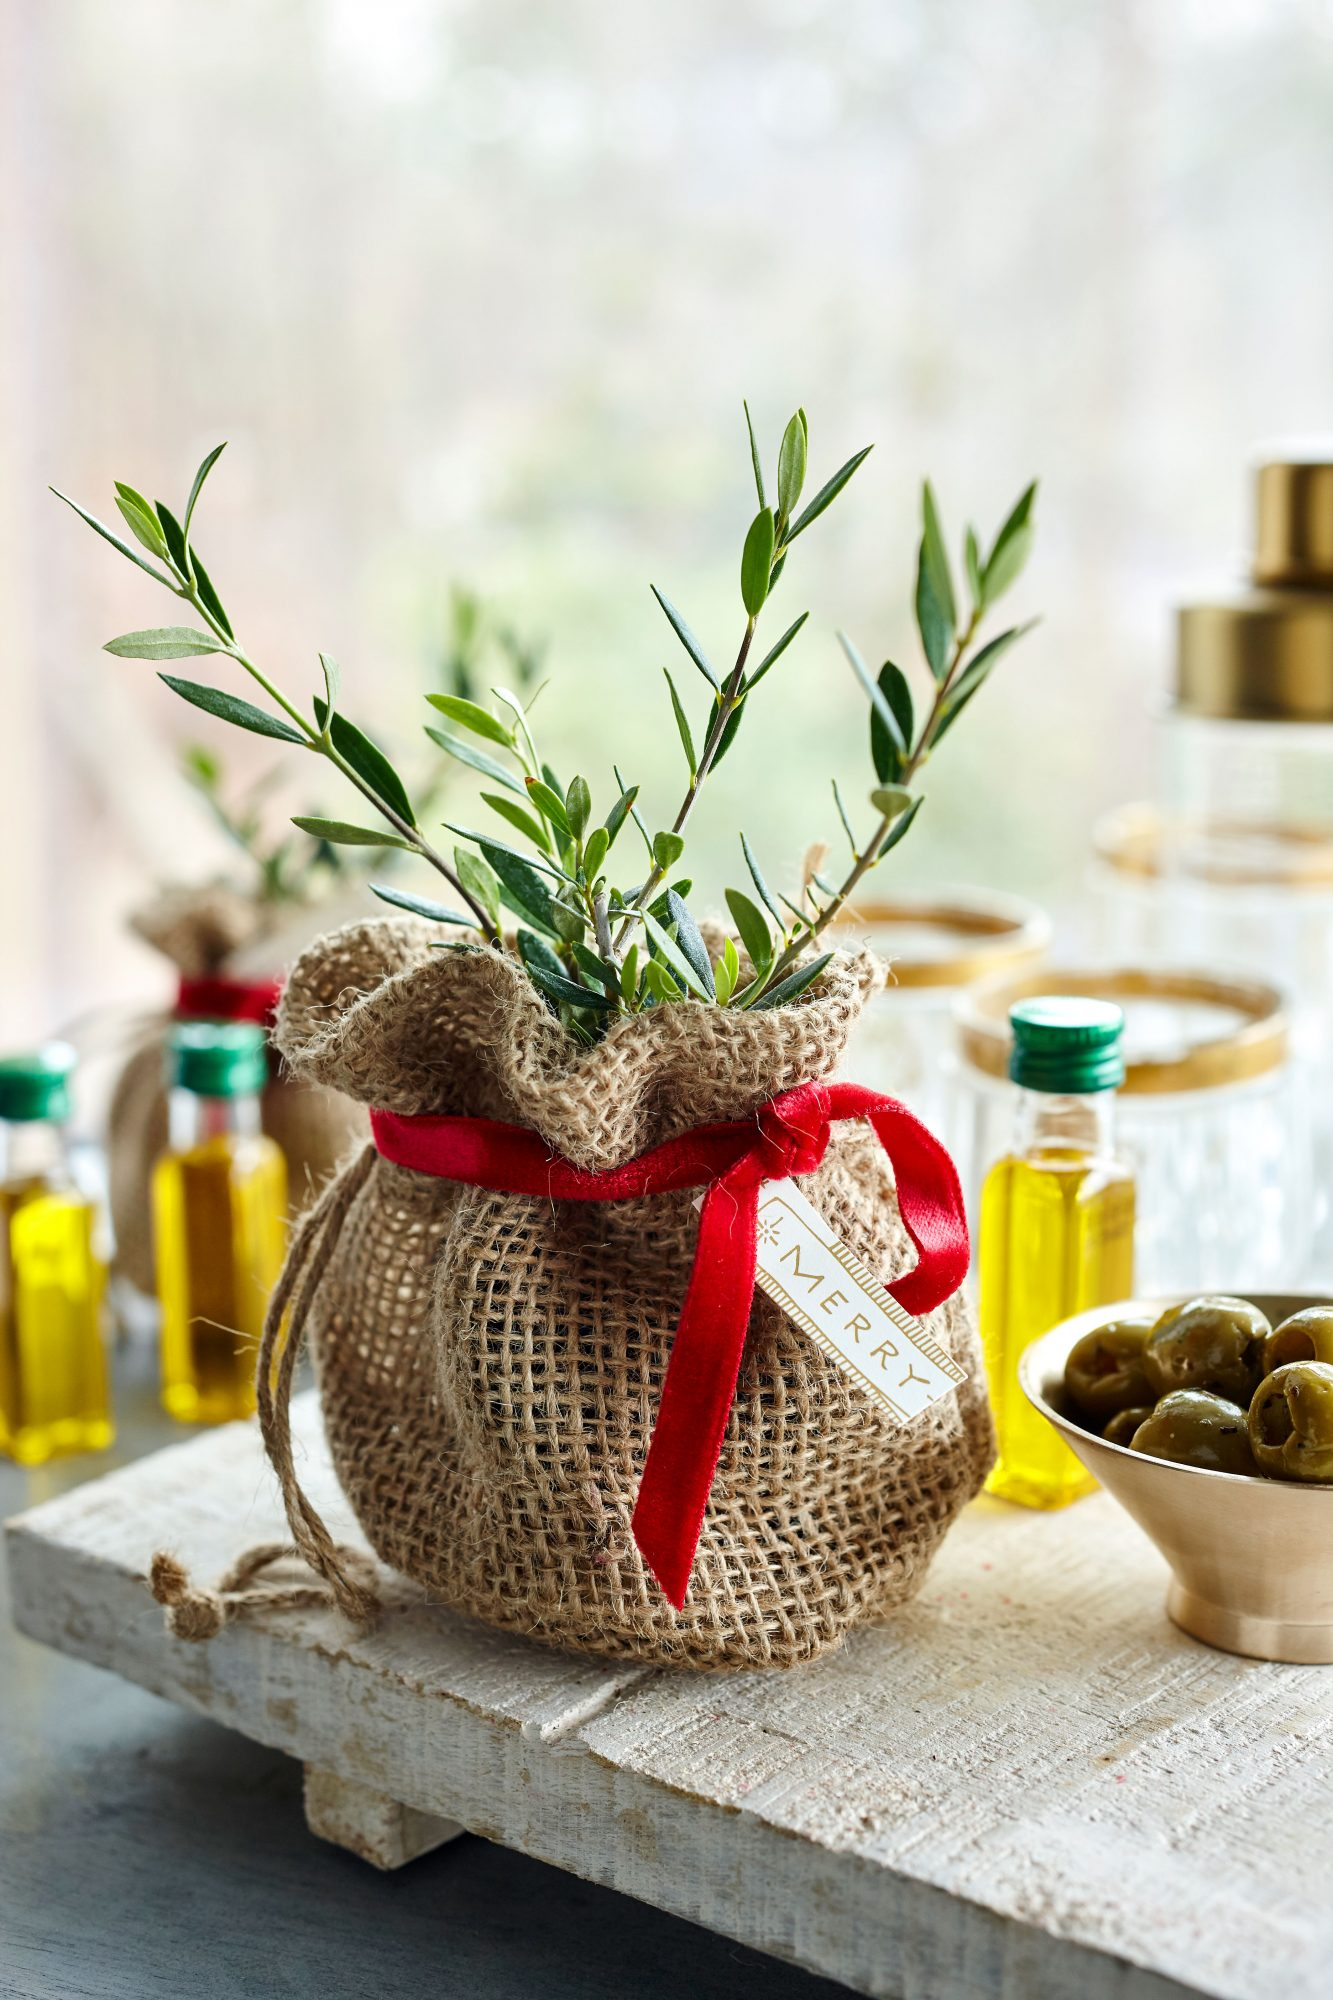 Olive Tree Seedling in Burlap Bag